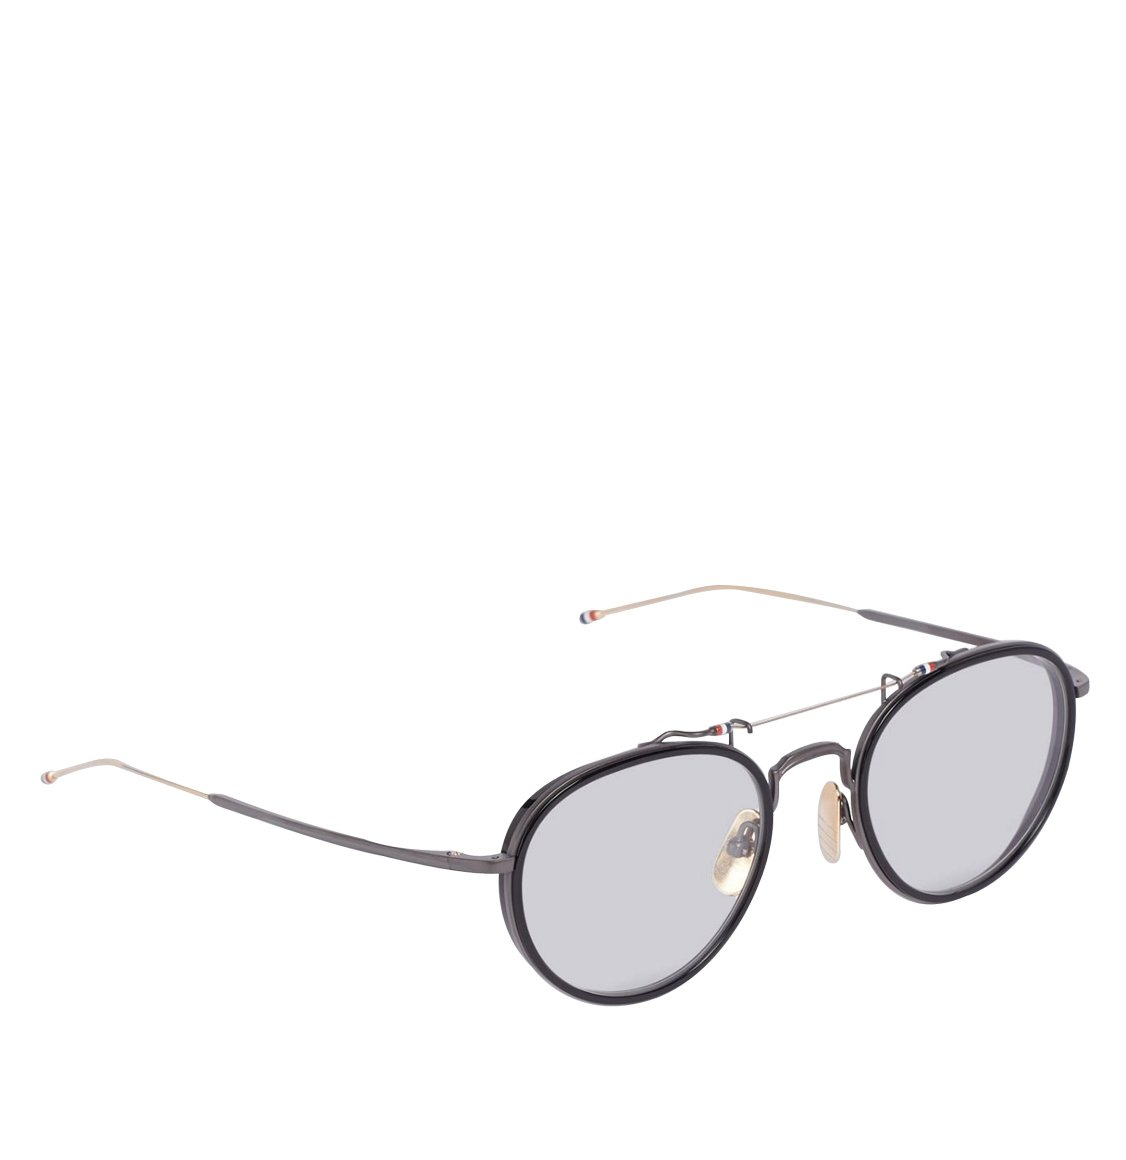 Thom Browne Black And Gold Oval Sunglasses Γυαλιά Ηλίου